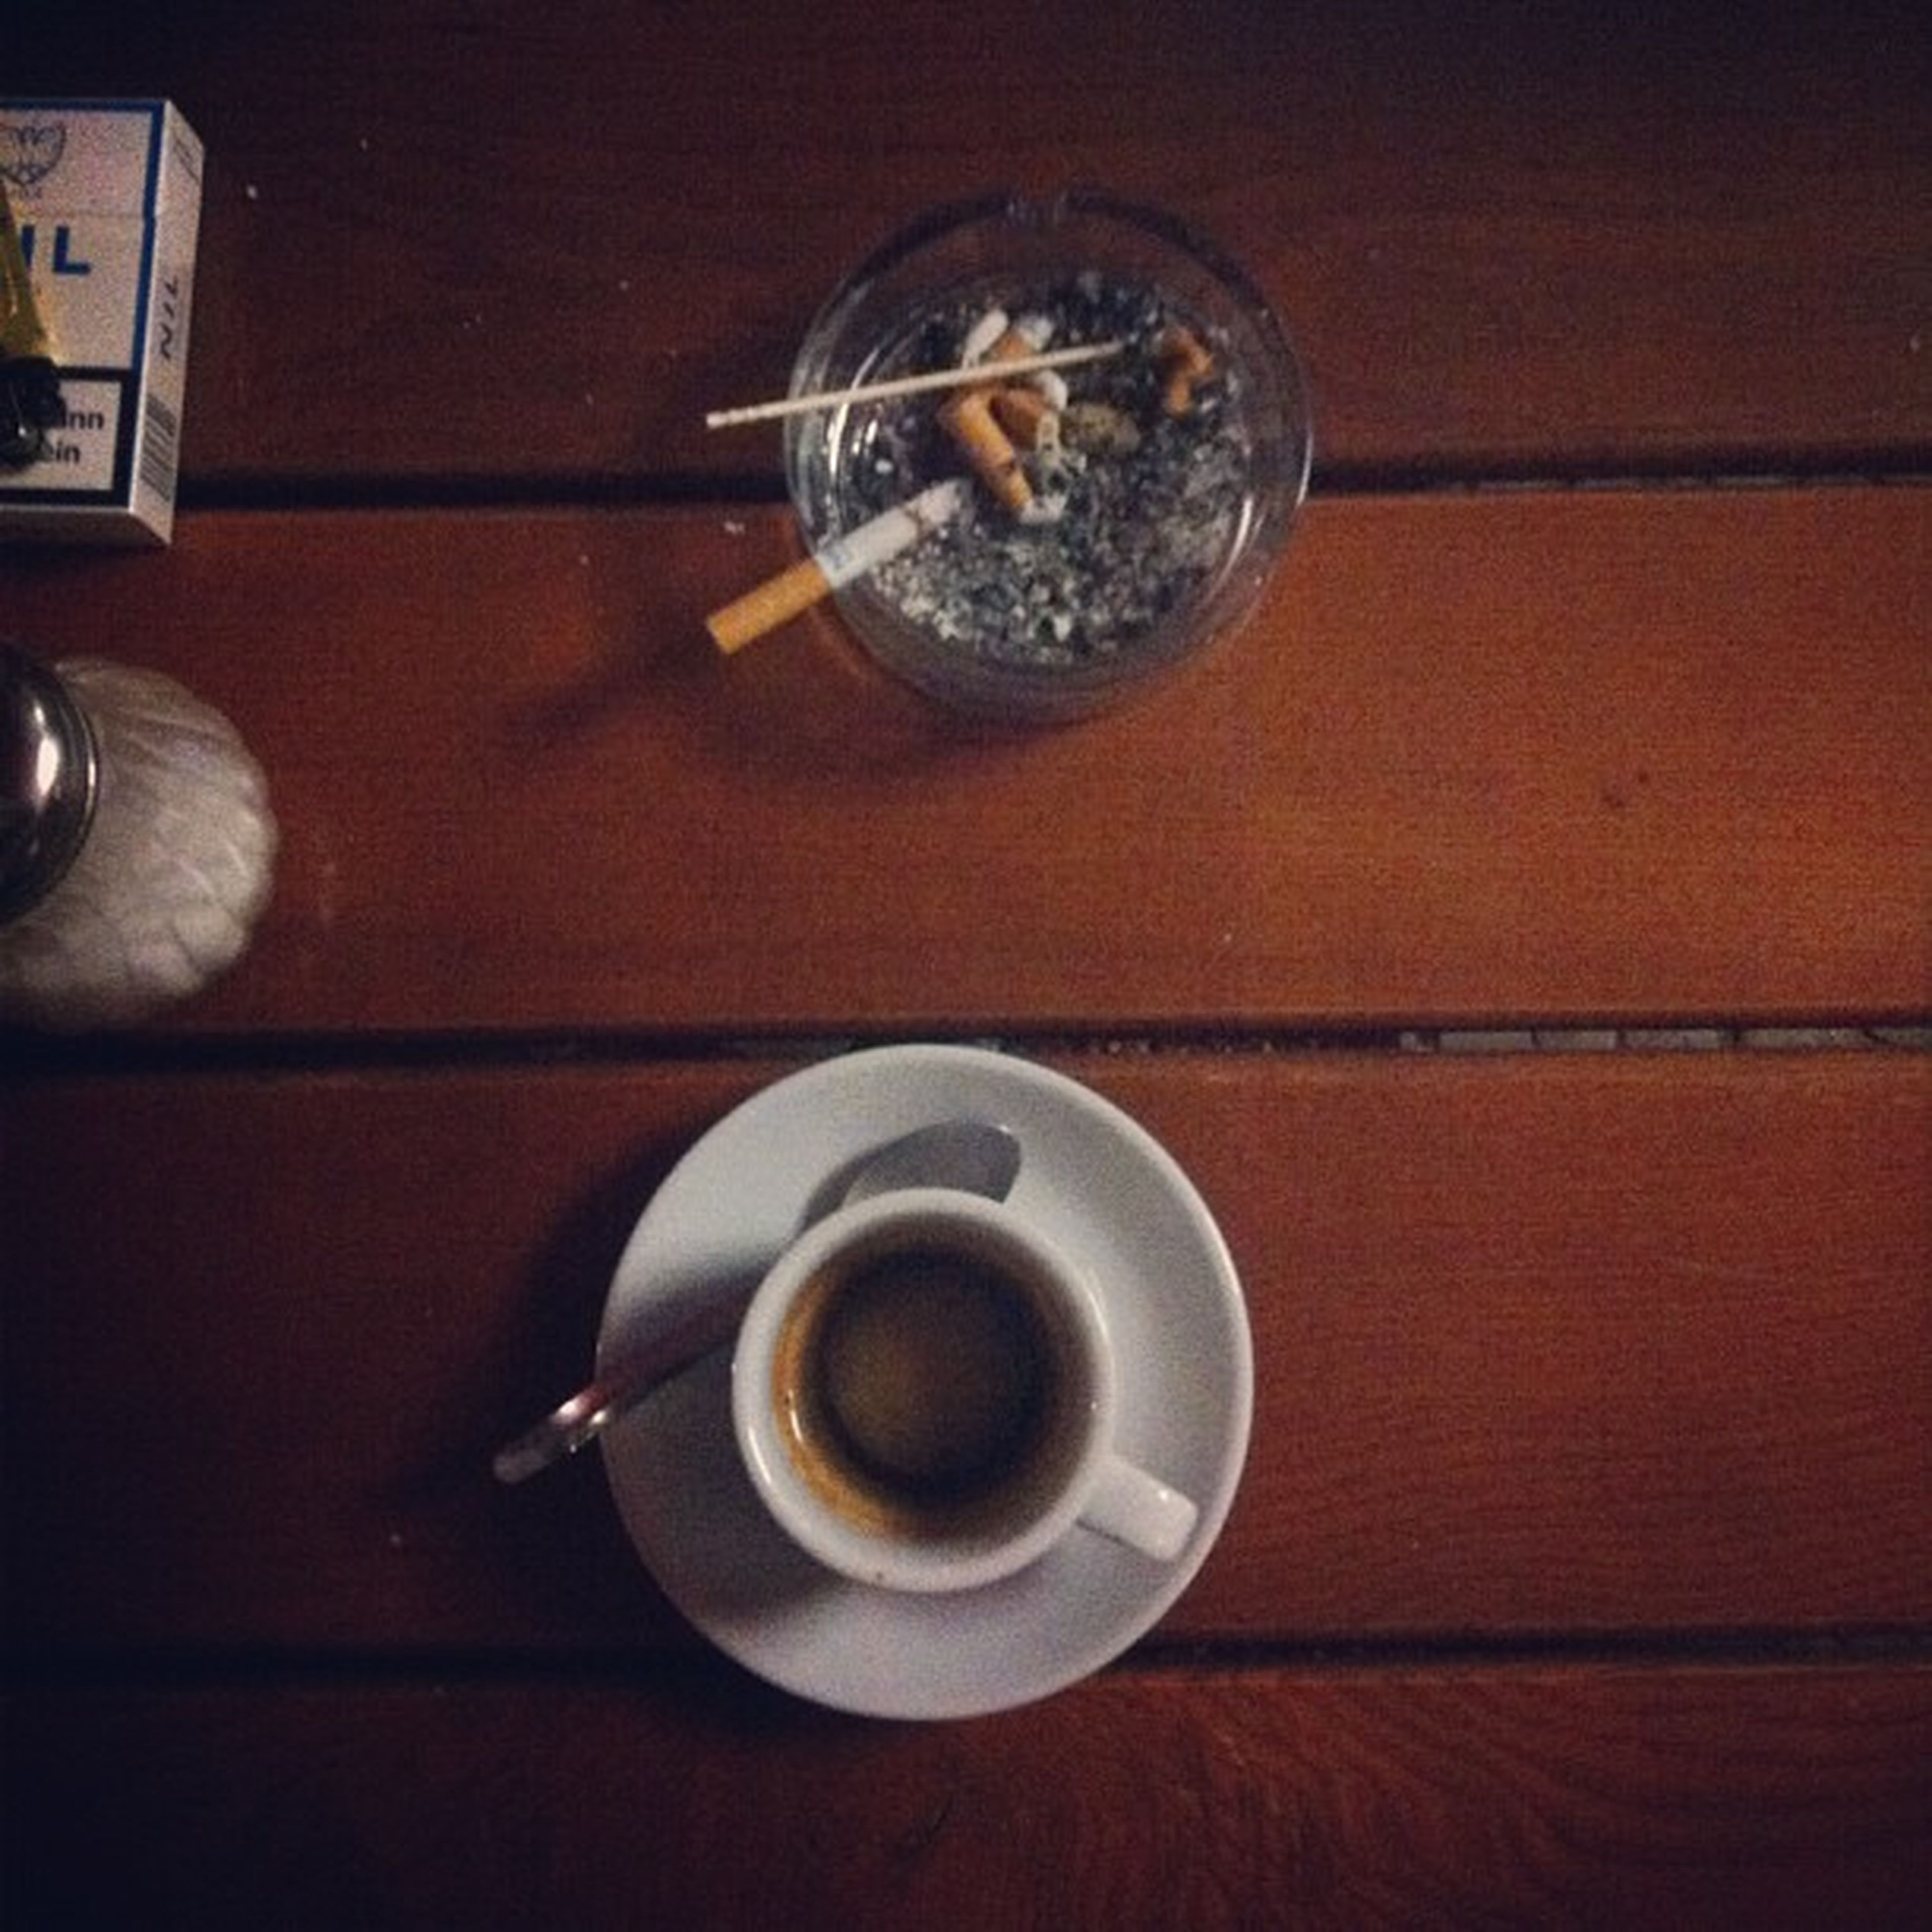 indoors, table, drink, still life, coffee cup, high angle view, close-up, food and drink, refreshment, spoon, directly above, saucer, no people, coffee, cup, coffee - drink, wood - material, reflection, circle, frothy drink